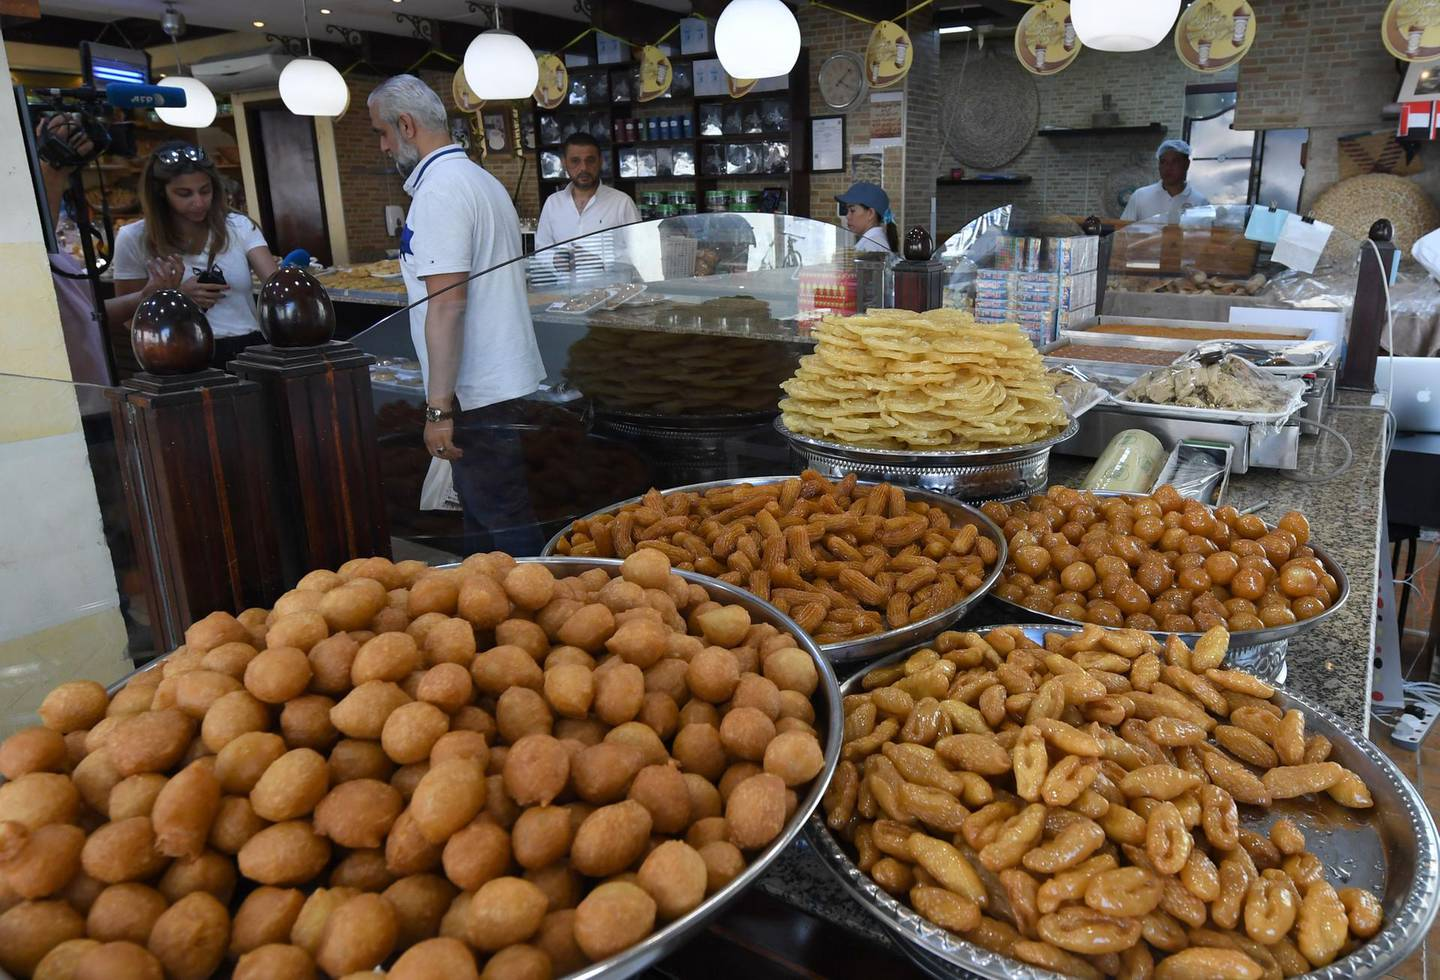 The al-Rabat Sweets and Bakery, founded by Iraqi immigrants in the UAE, is pictured during the Muslim holy month of Ramadan, in Sharjah on May 28, 2019.  / AFP / KARIM SAHIB